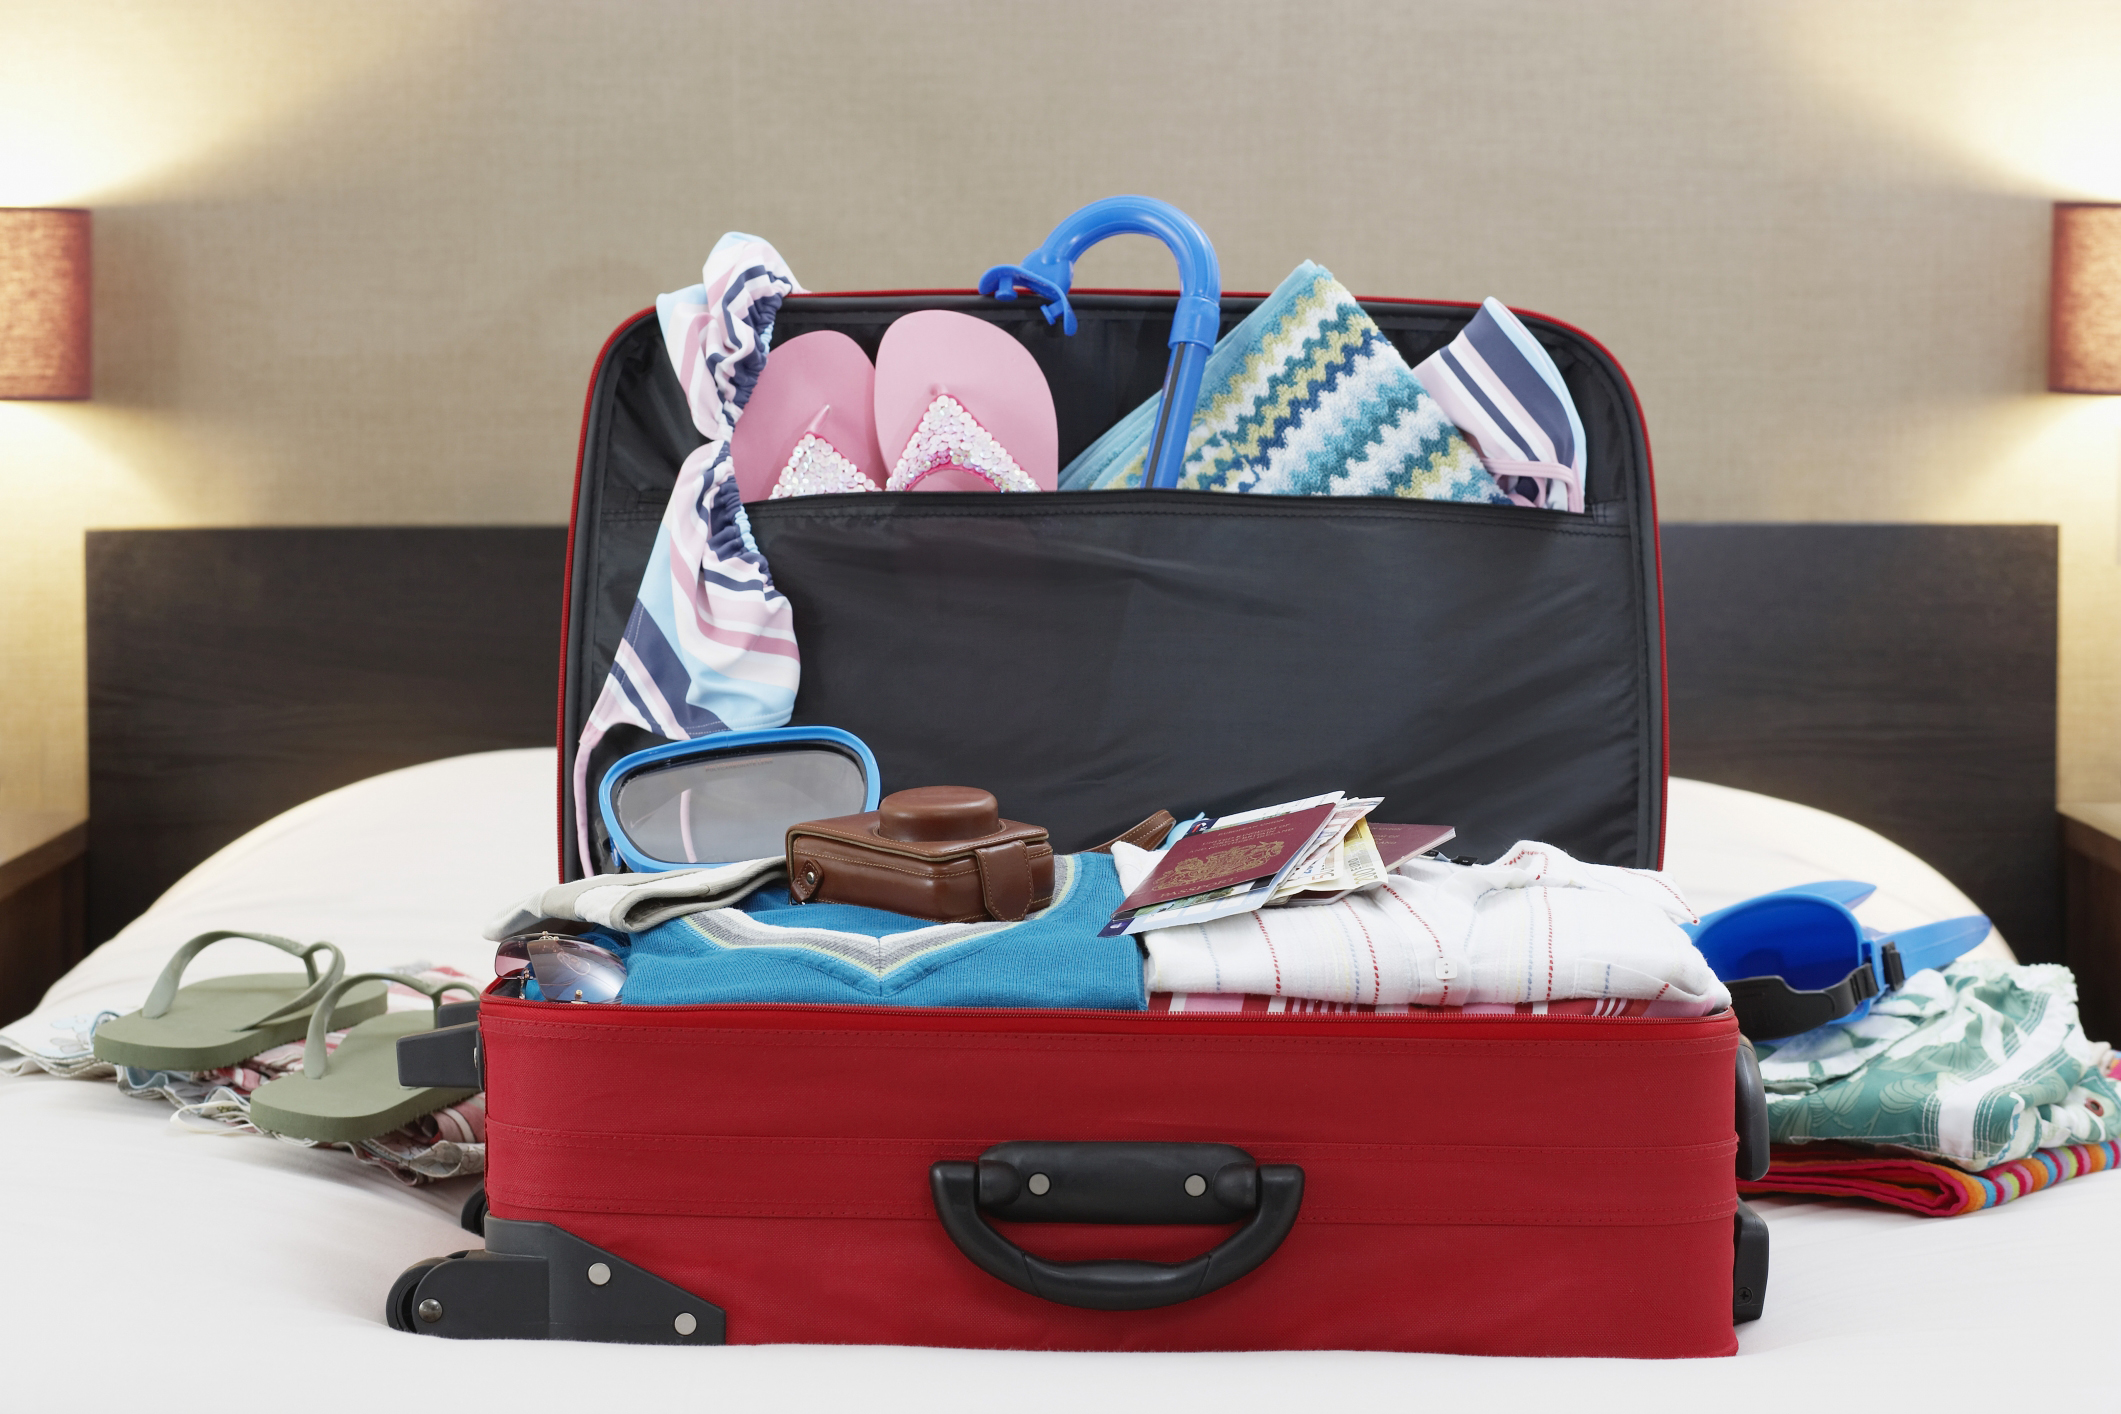 packing-tips-suitcase.jpg